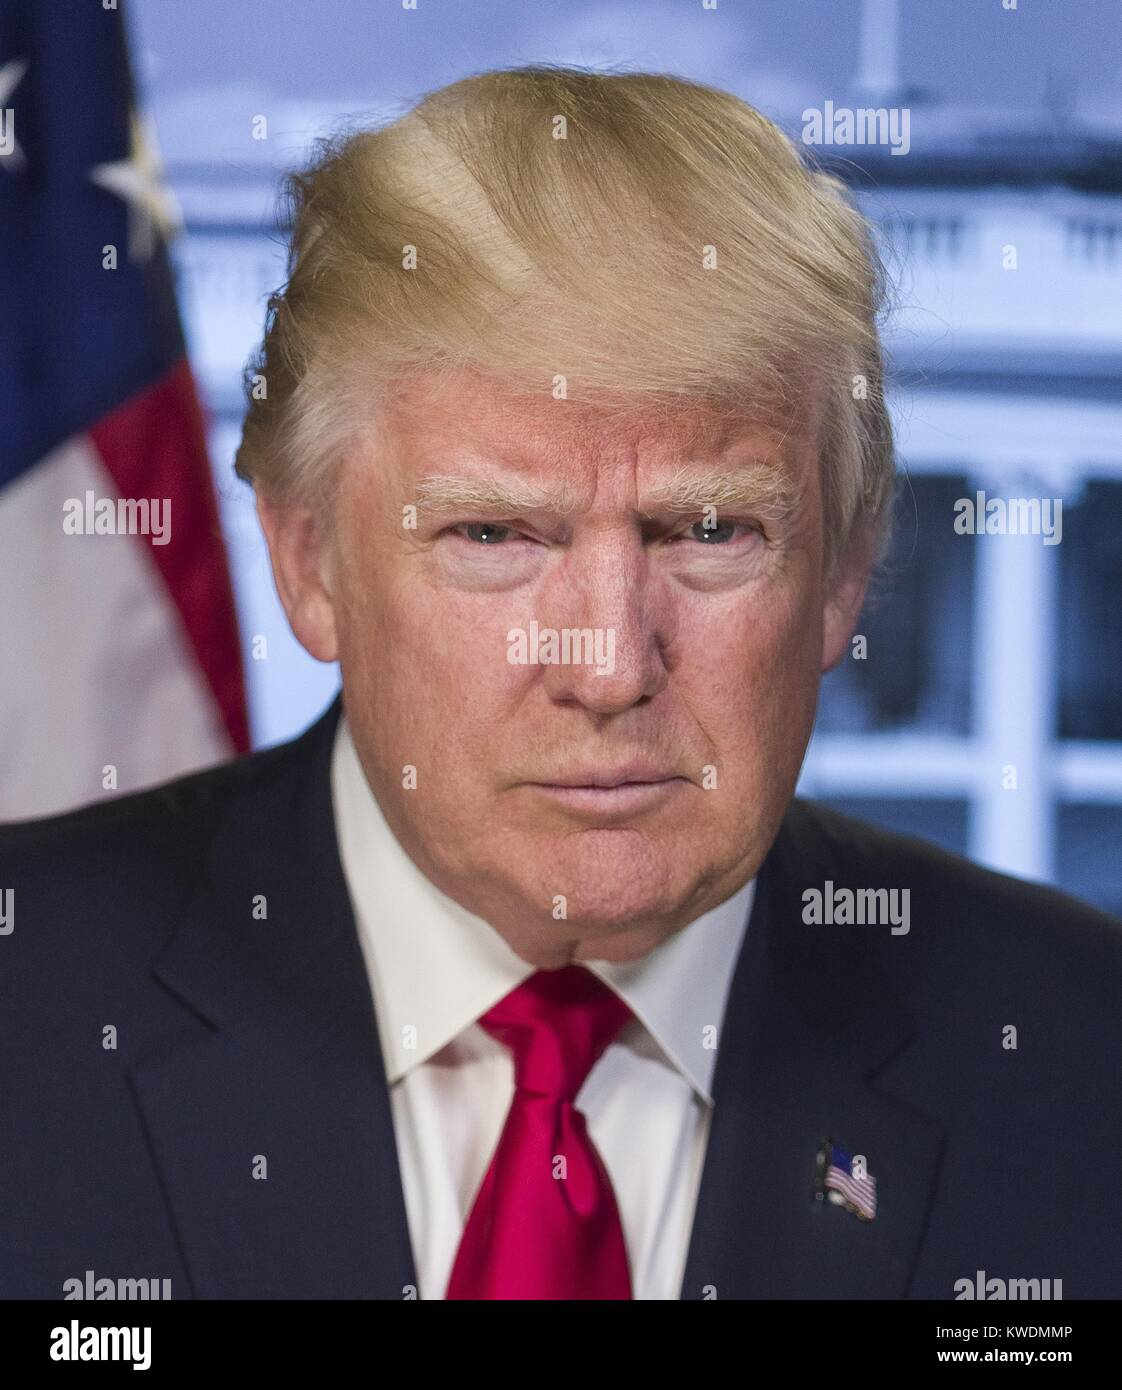 President-elect Donald Trump in a portrait released by the White House on Jan. 20, 2017. Trump is unsmiling, projecting - Stock Image